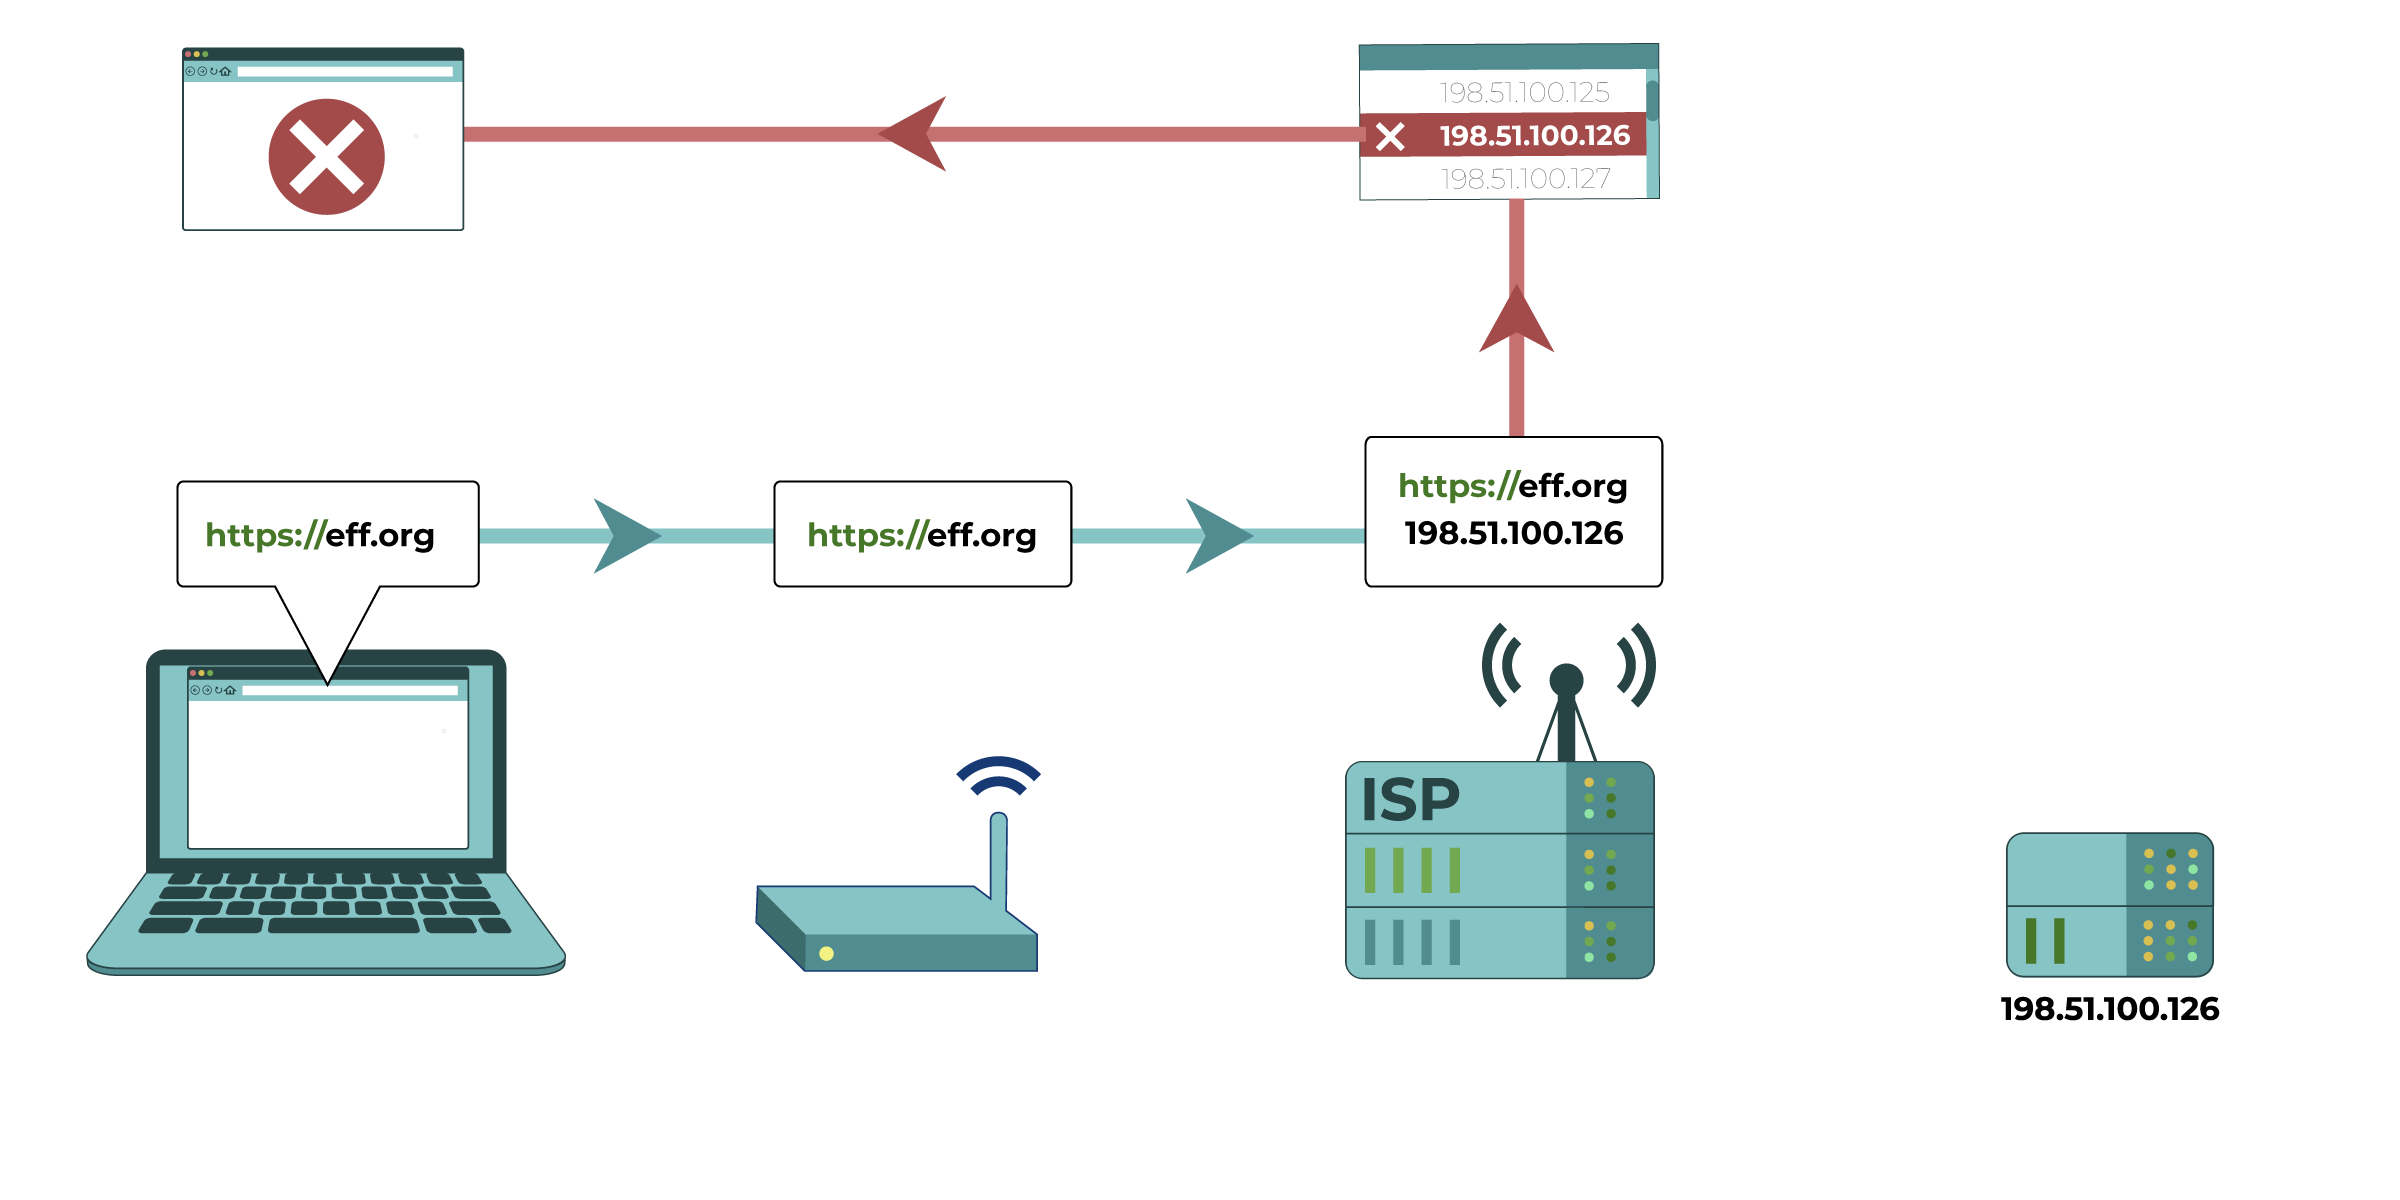 In this diagram, the Internet Service Provider cross-checks the requested IP address against a list of blocked IP addresses. It determines that the IP address for eff.org matches that of a blocked IP address, and blocks the request to the website.